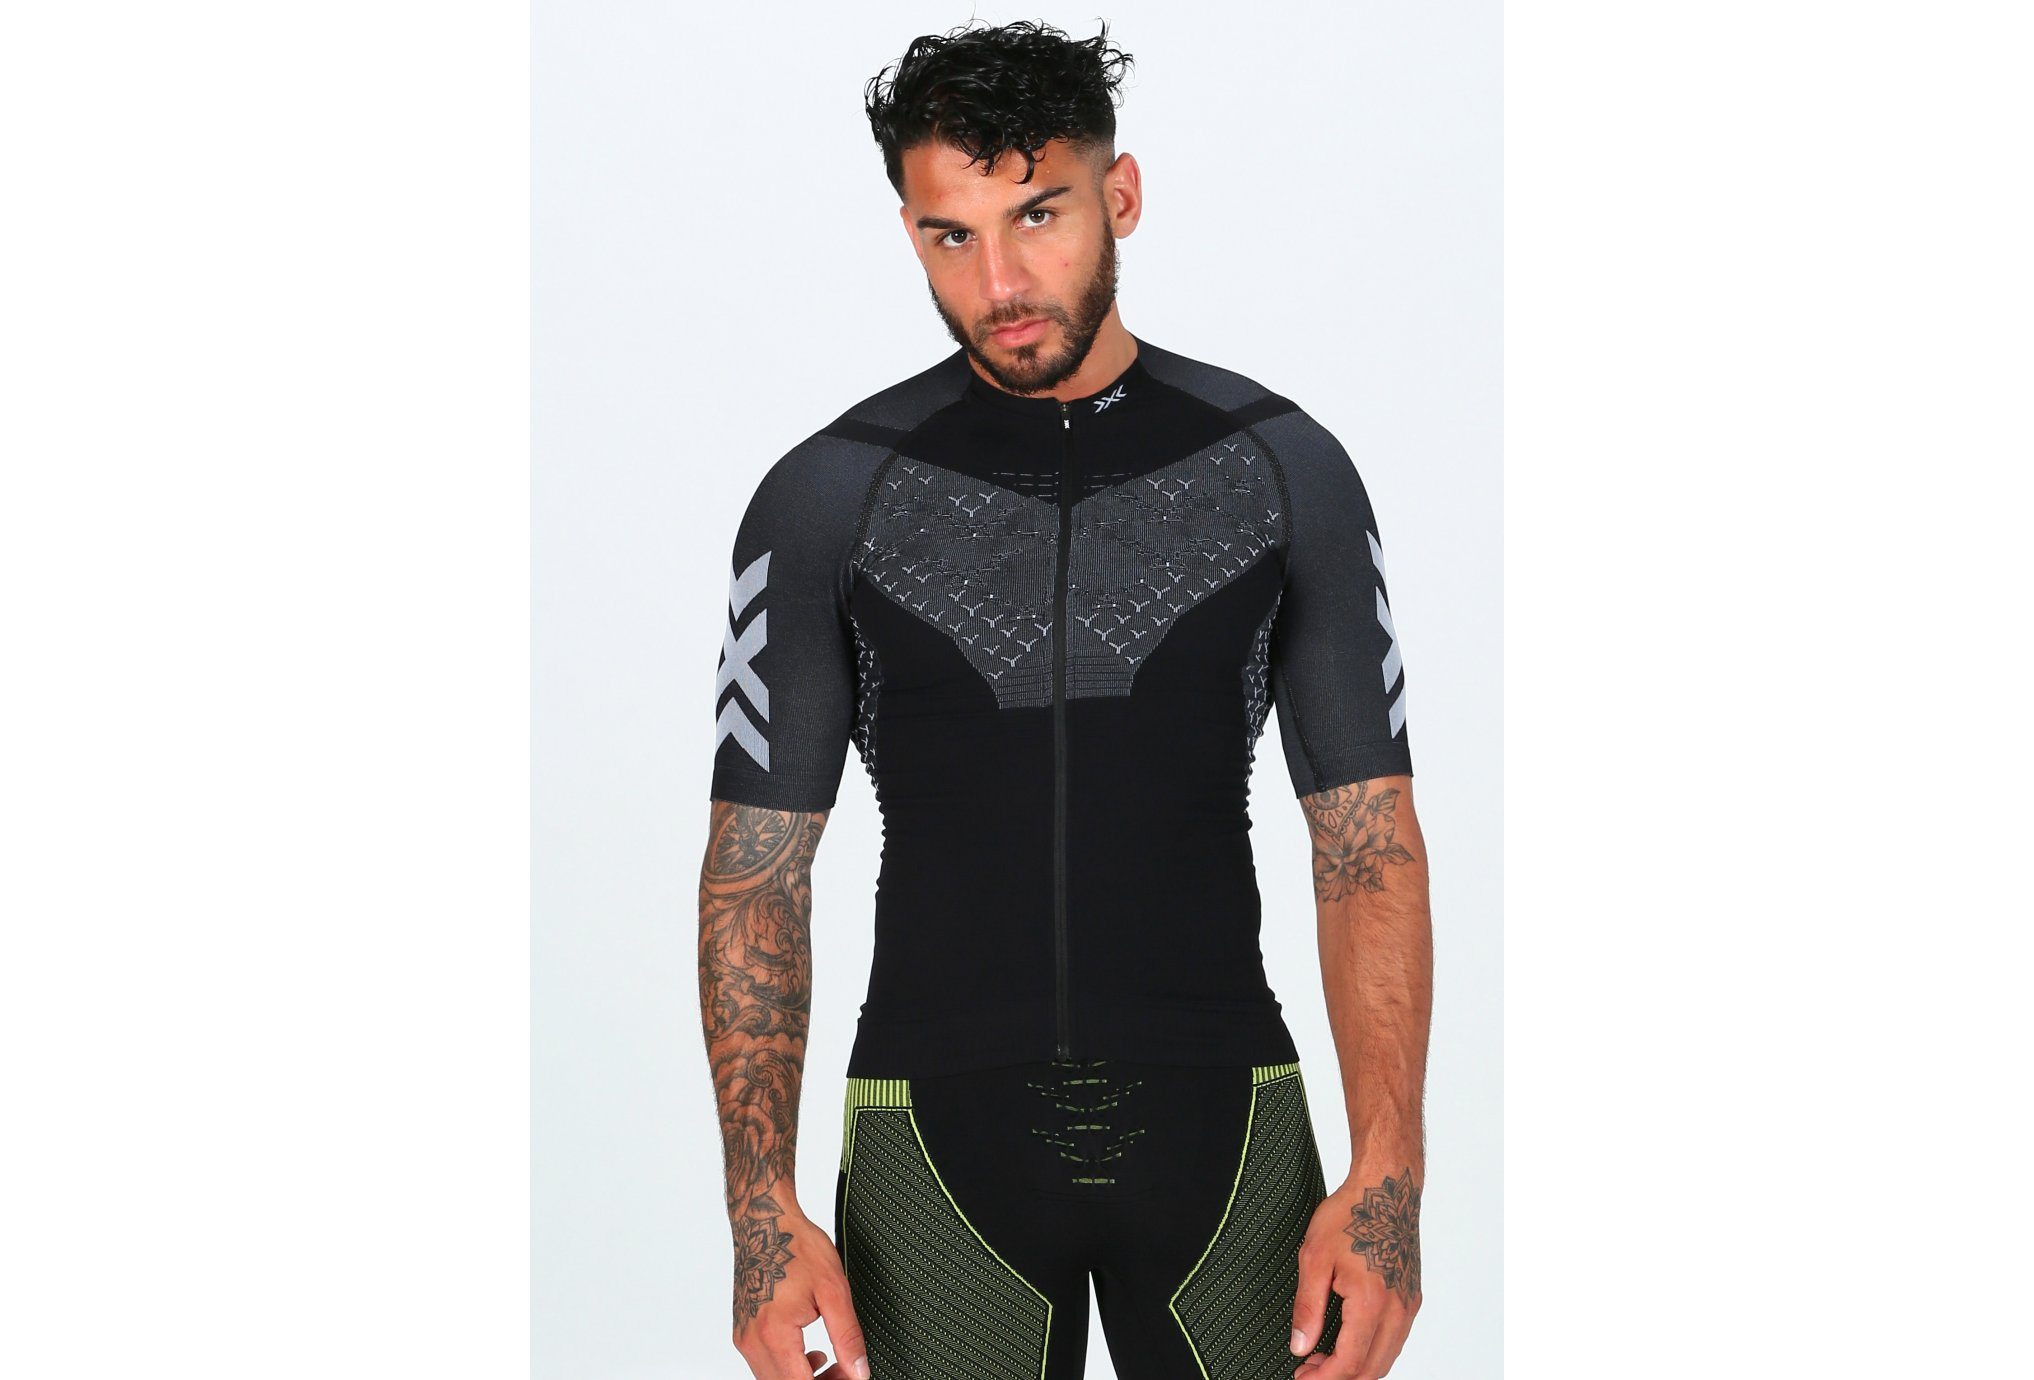 X-Bionic twyce Vélo Cuissard Hommes